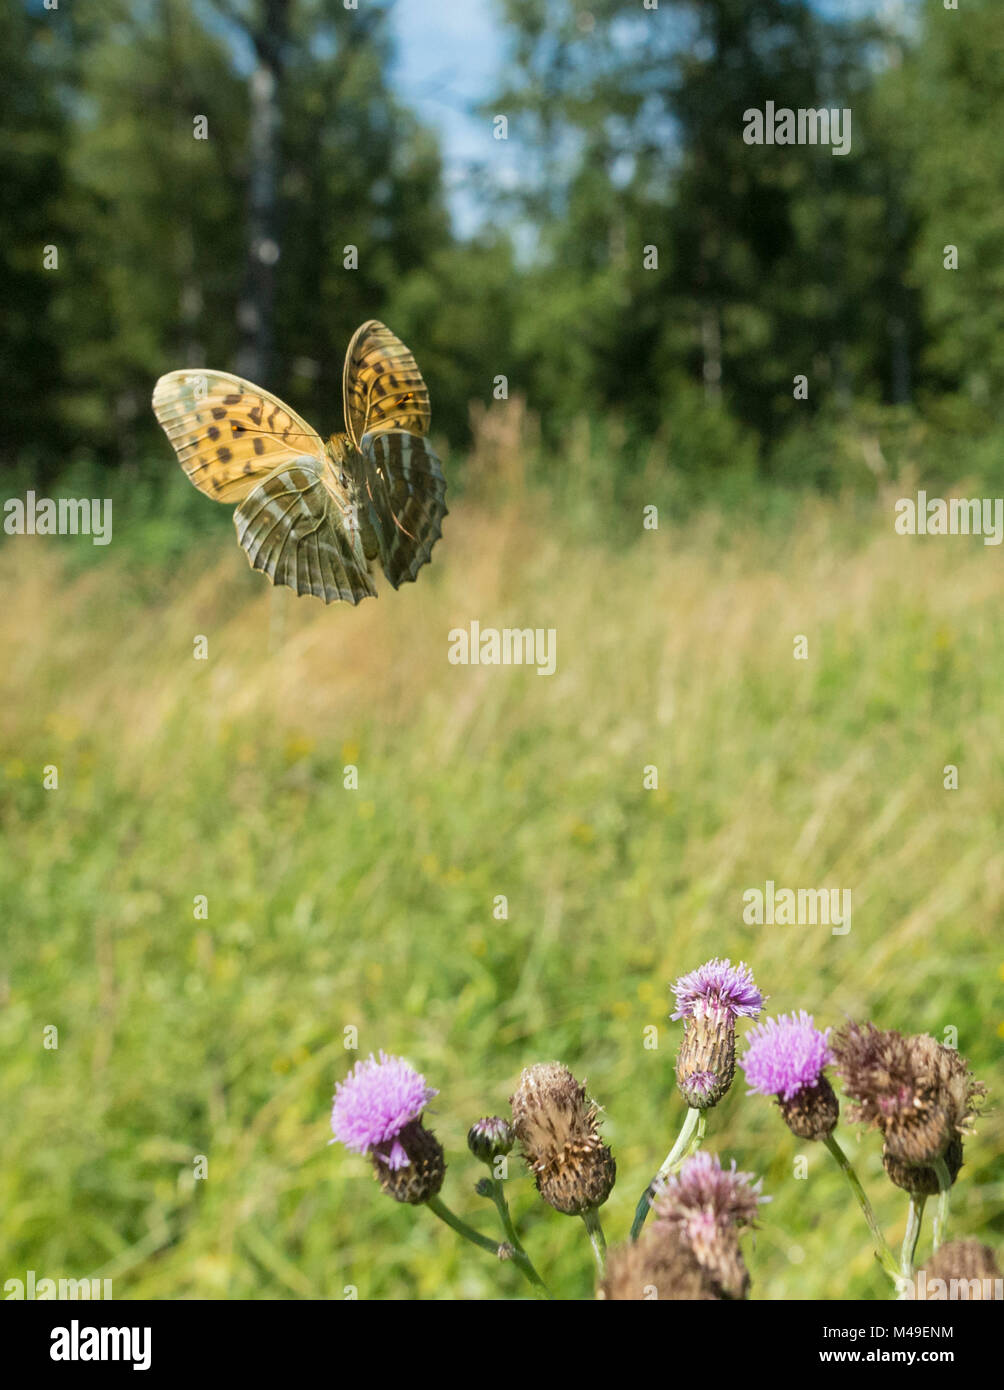 Silver washed fritillary butterfly  (Argynnis paphia) female in flight with thistles,  Uusimaa, Finland, August. - Stock Image